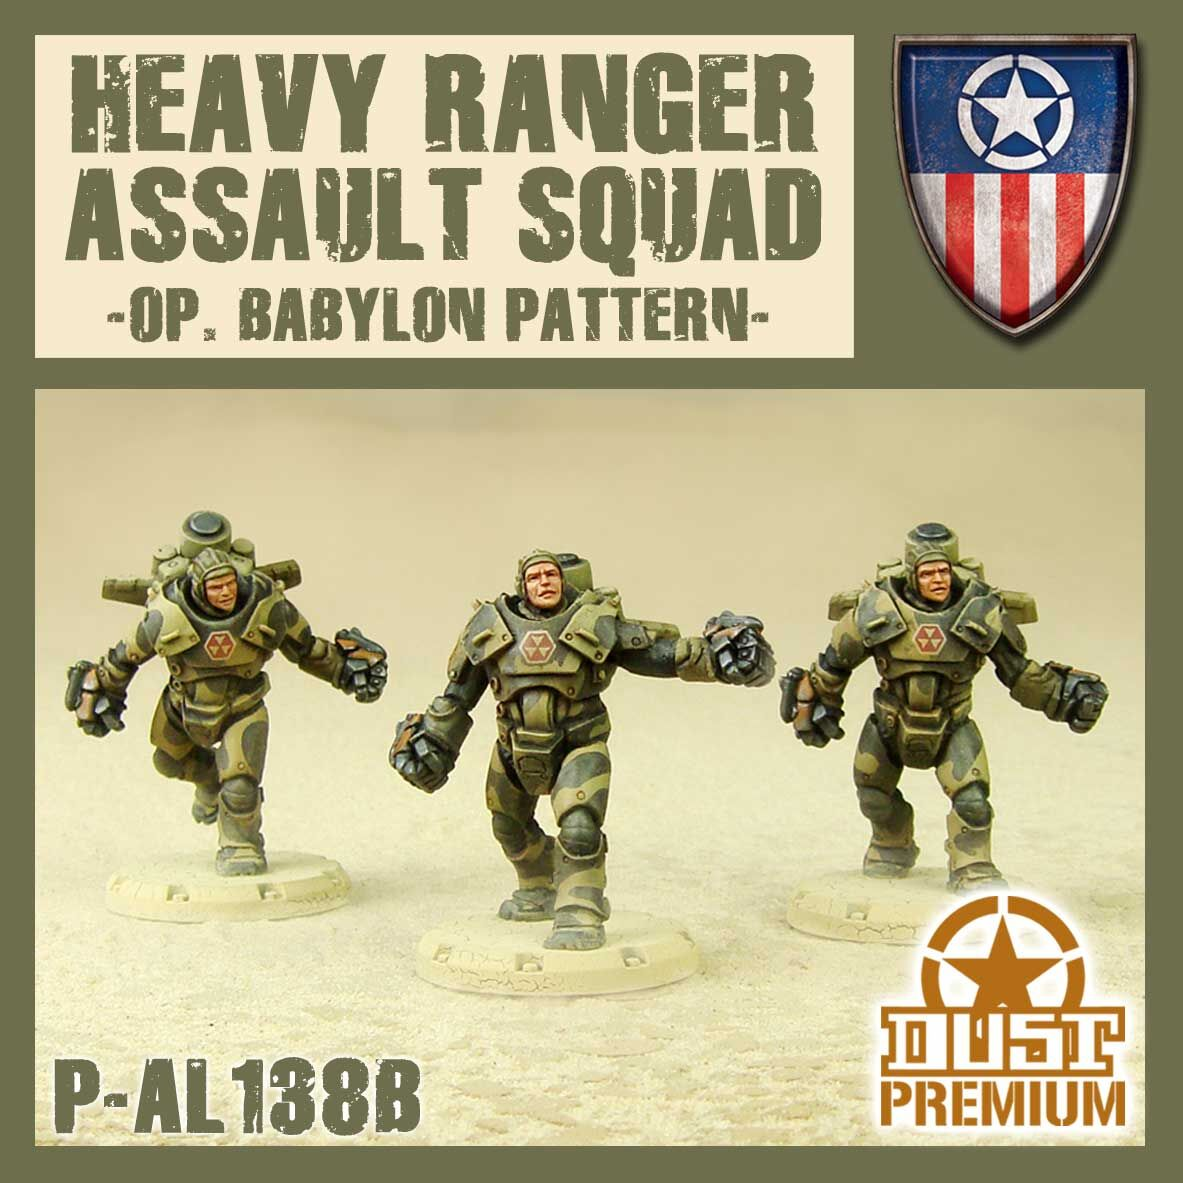 Heavy Ranger Assault Squad Premium